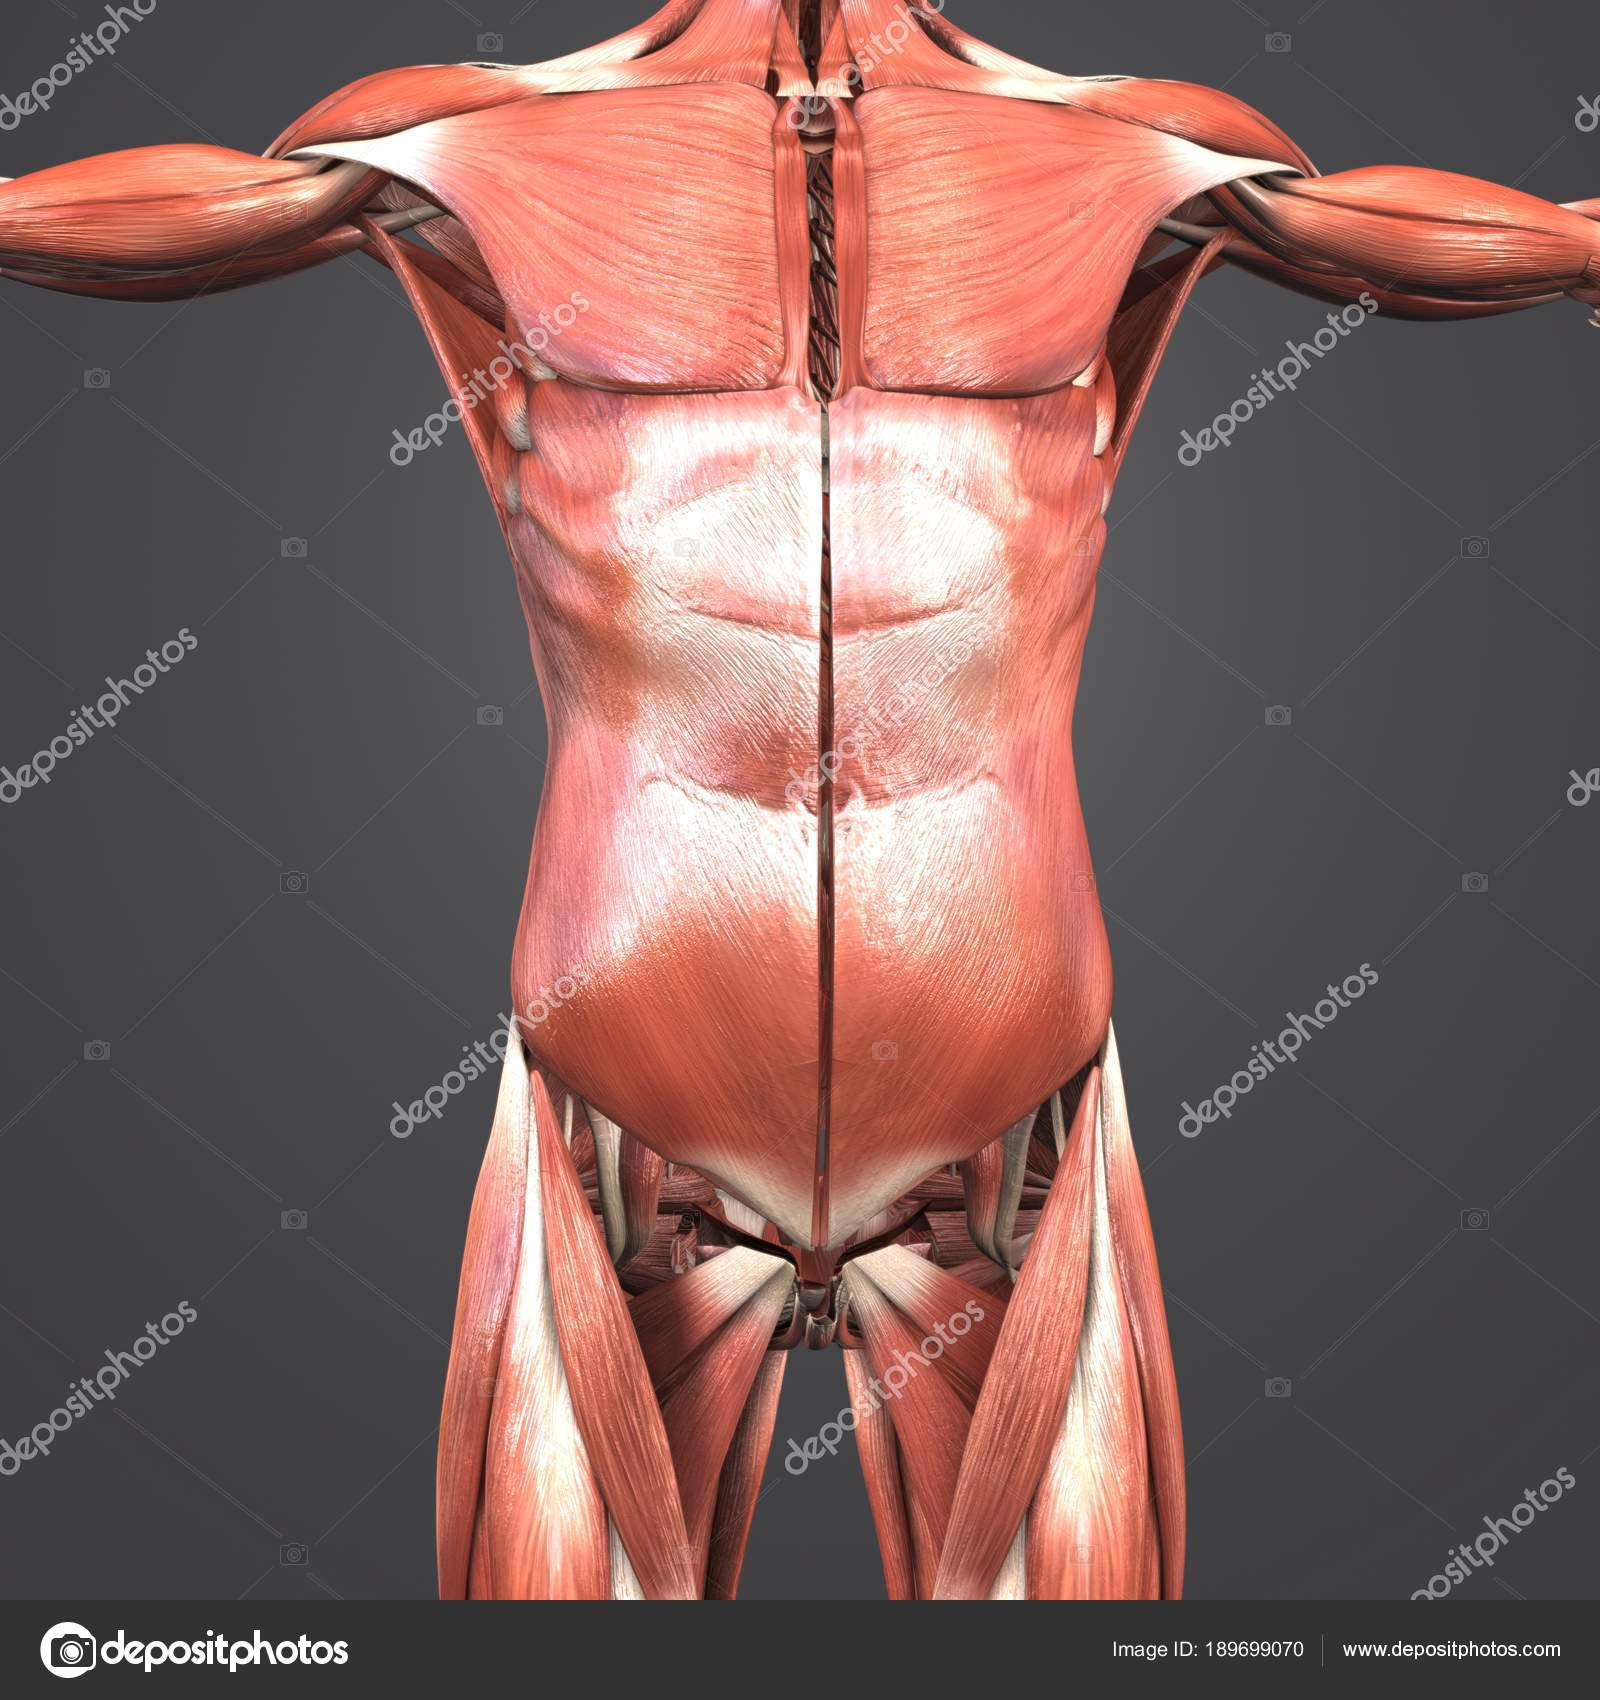 Colorful Medical Illustration Human Upper Body Anatomy Muscles